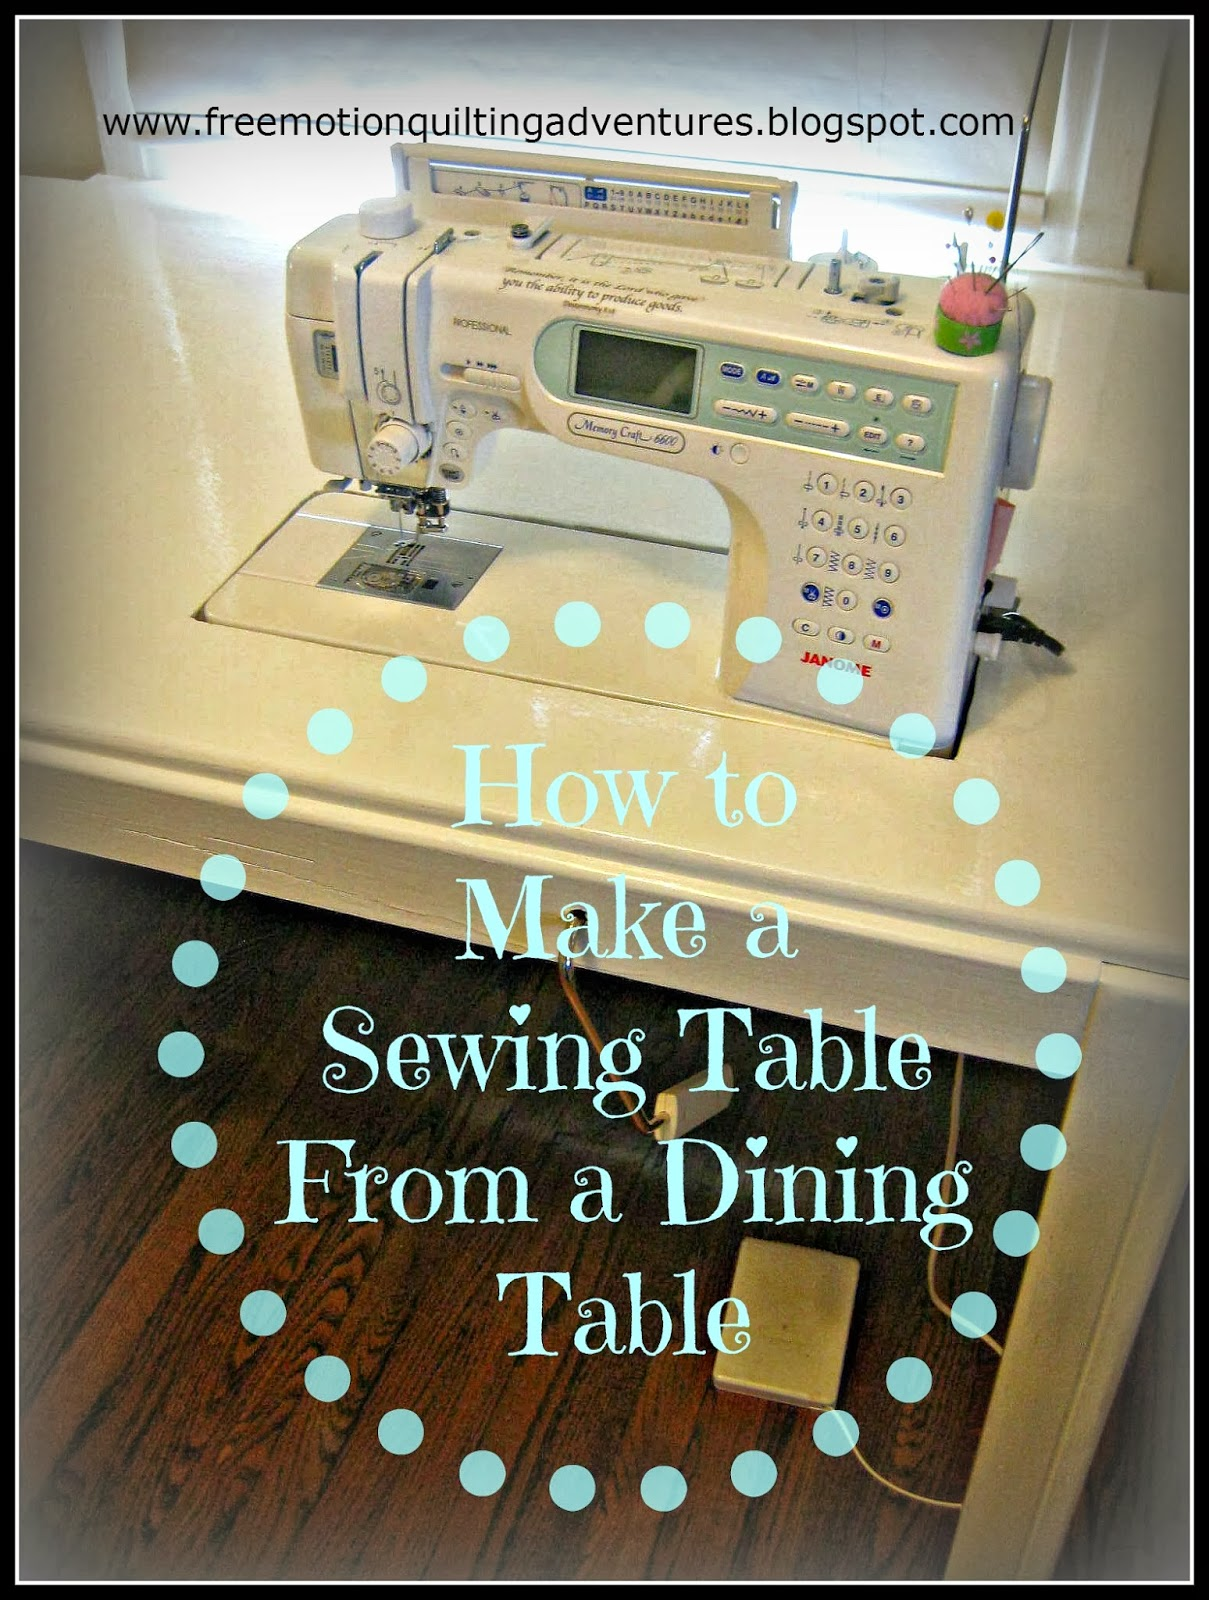 Sewing Machine Lift Diy : sewing, machine, Amy's, Motion, Quilting, Adventures:, Sewing, Machine, Table:, Great